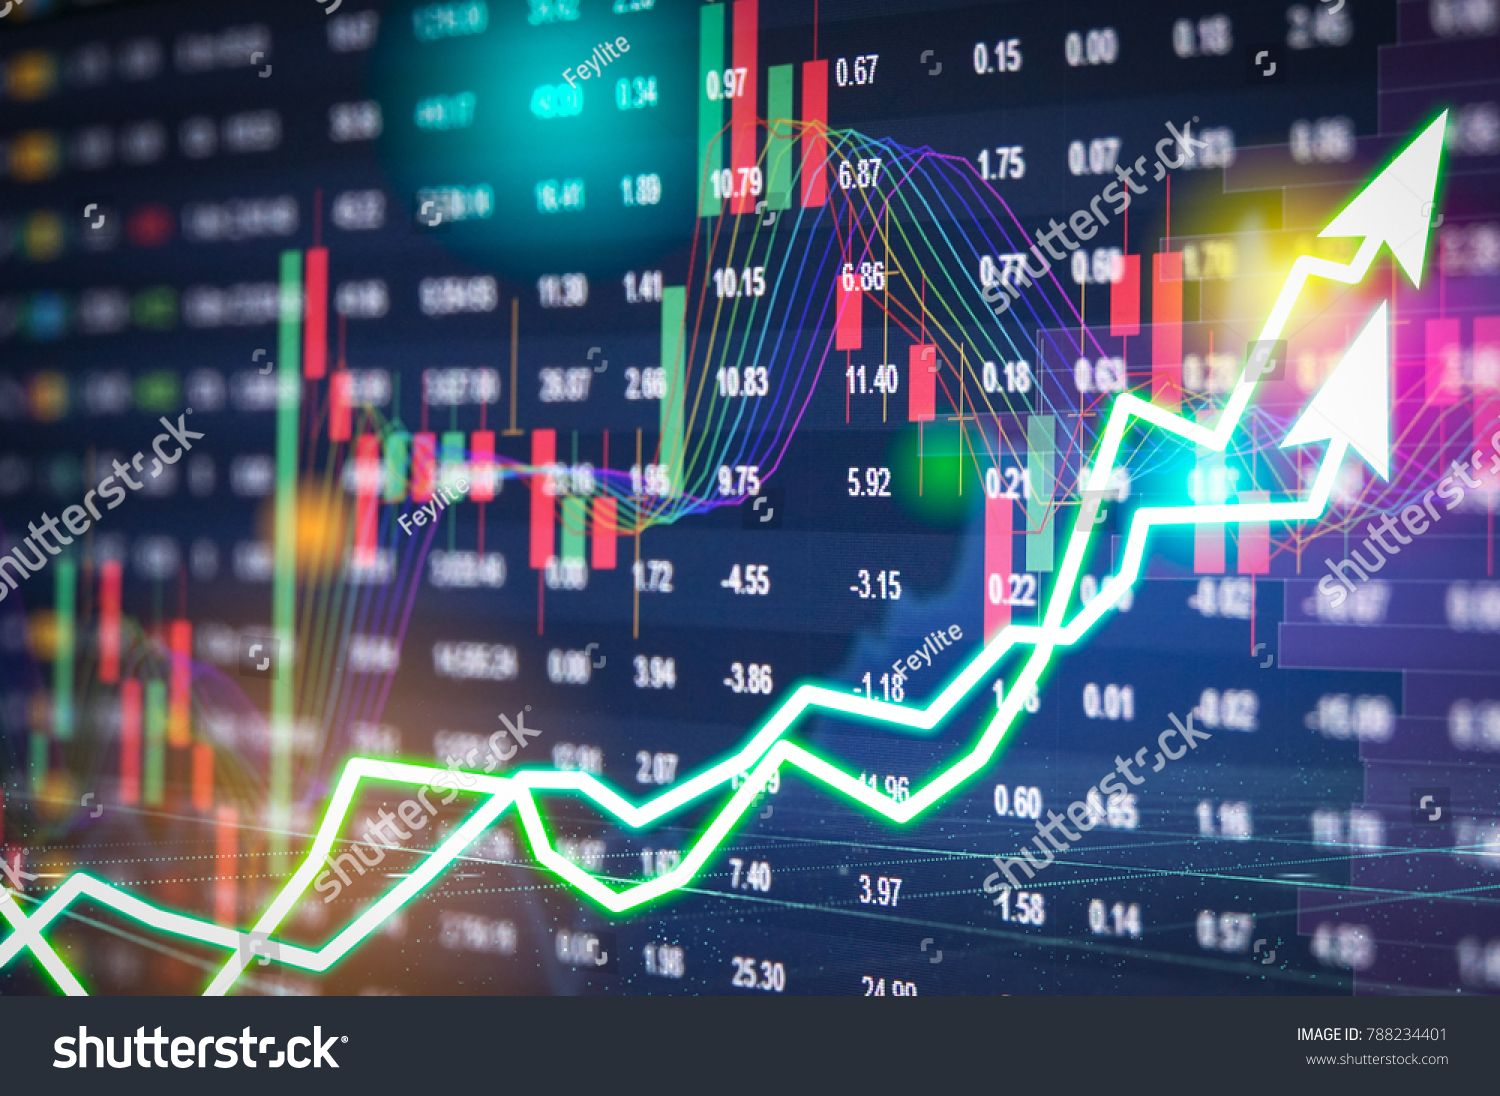 Stock Market Digital Graph Chart On Led Display Concept A Large Display Of Daily Stock Market Price And Quotation Indi Digital Marketing Stock Market Digital